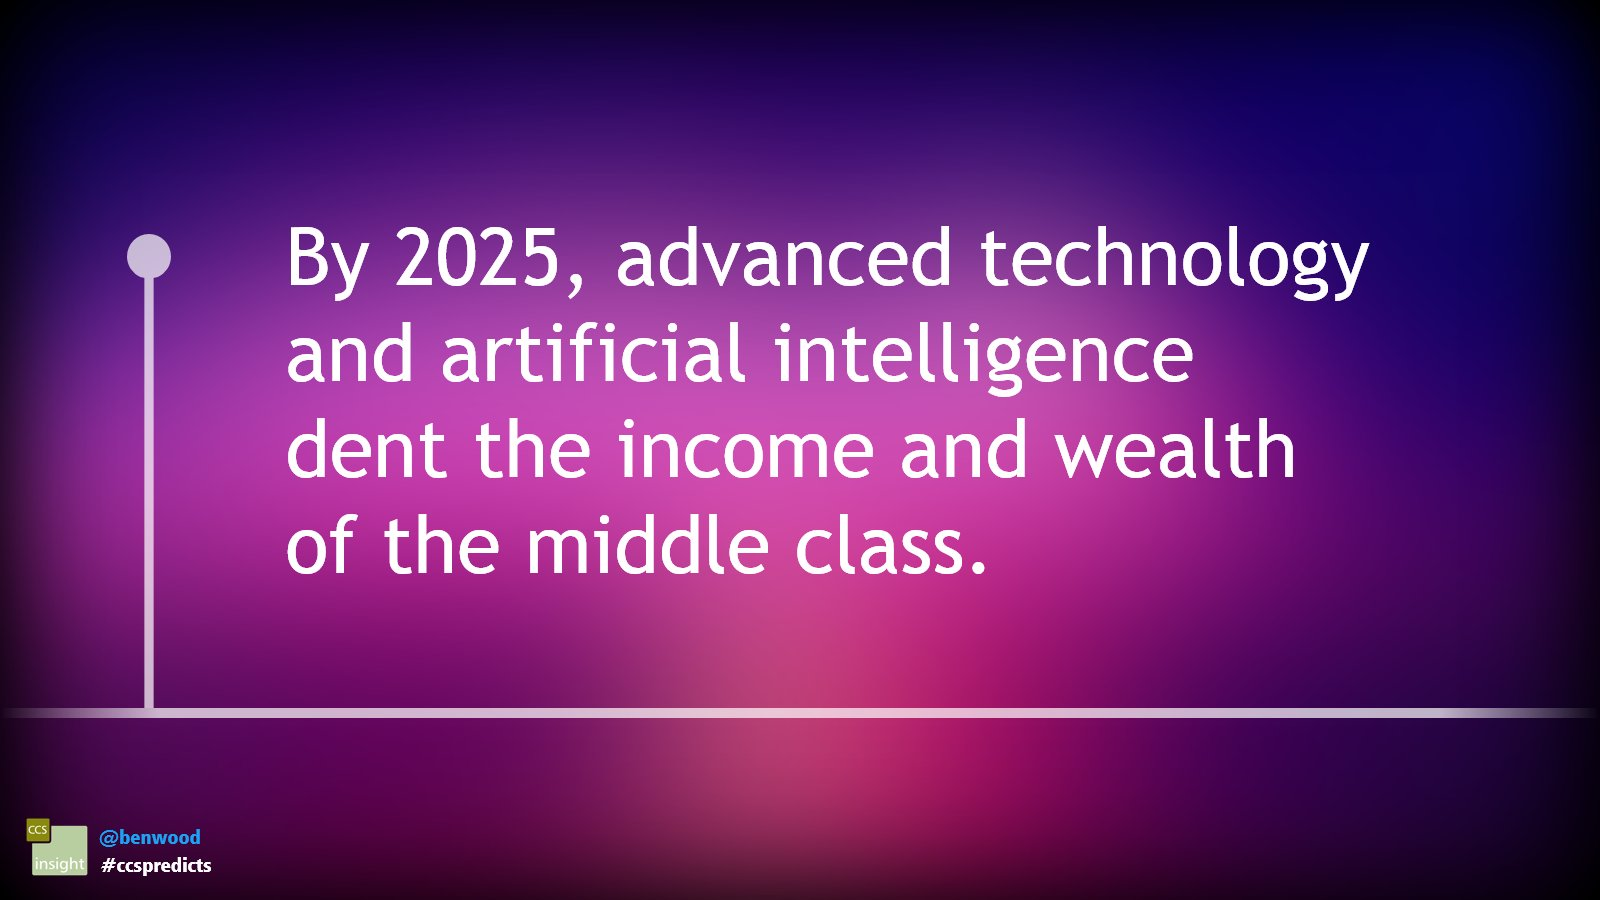 By 2025, advanced technology and artificial intelligence dent the income and wealth of the middle class #ccspredicts https://t.co/hSJKNAADjn